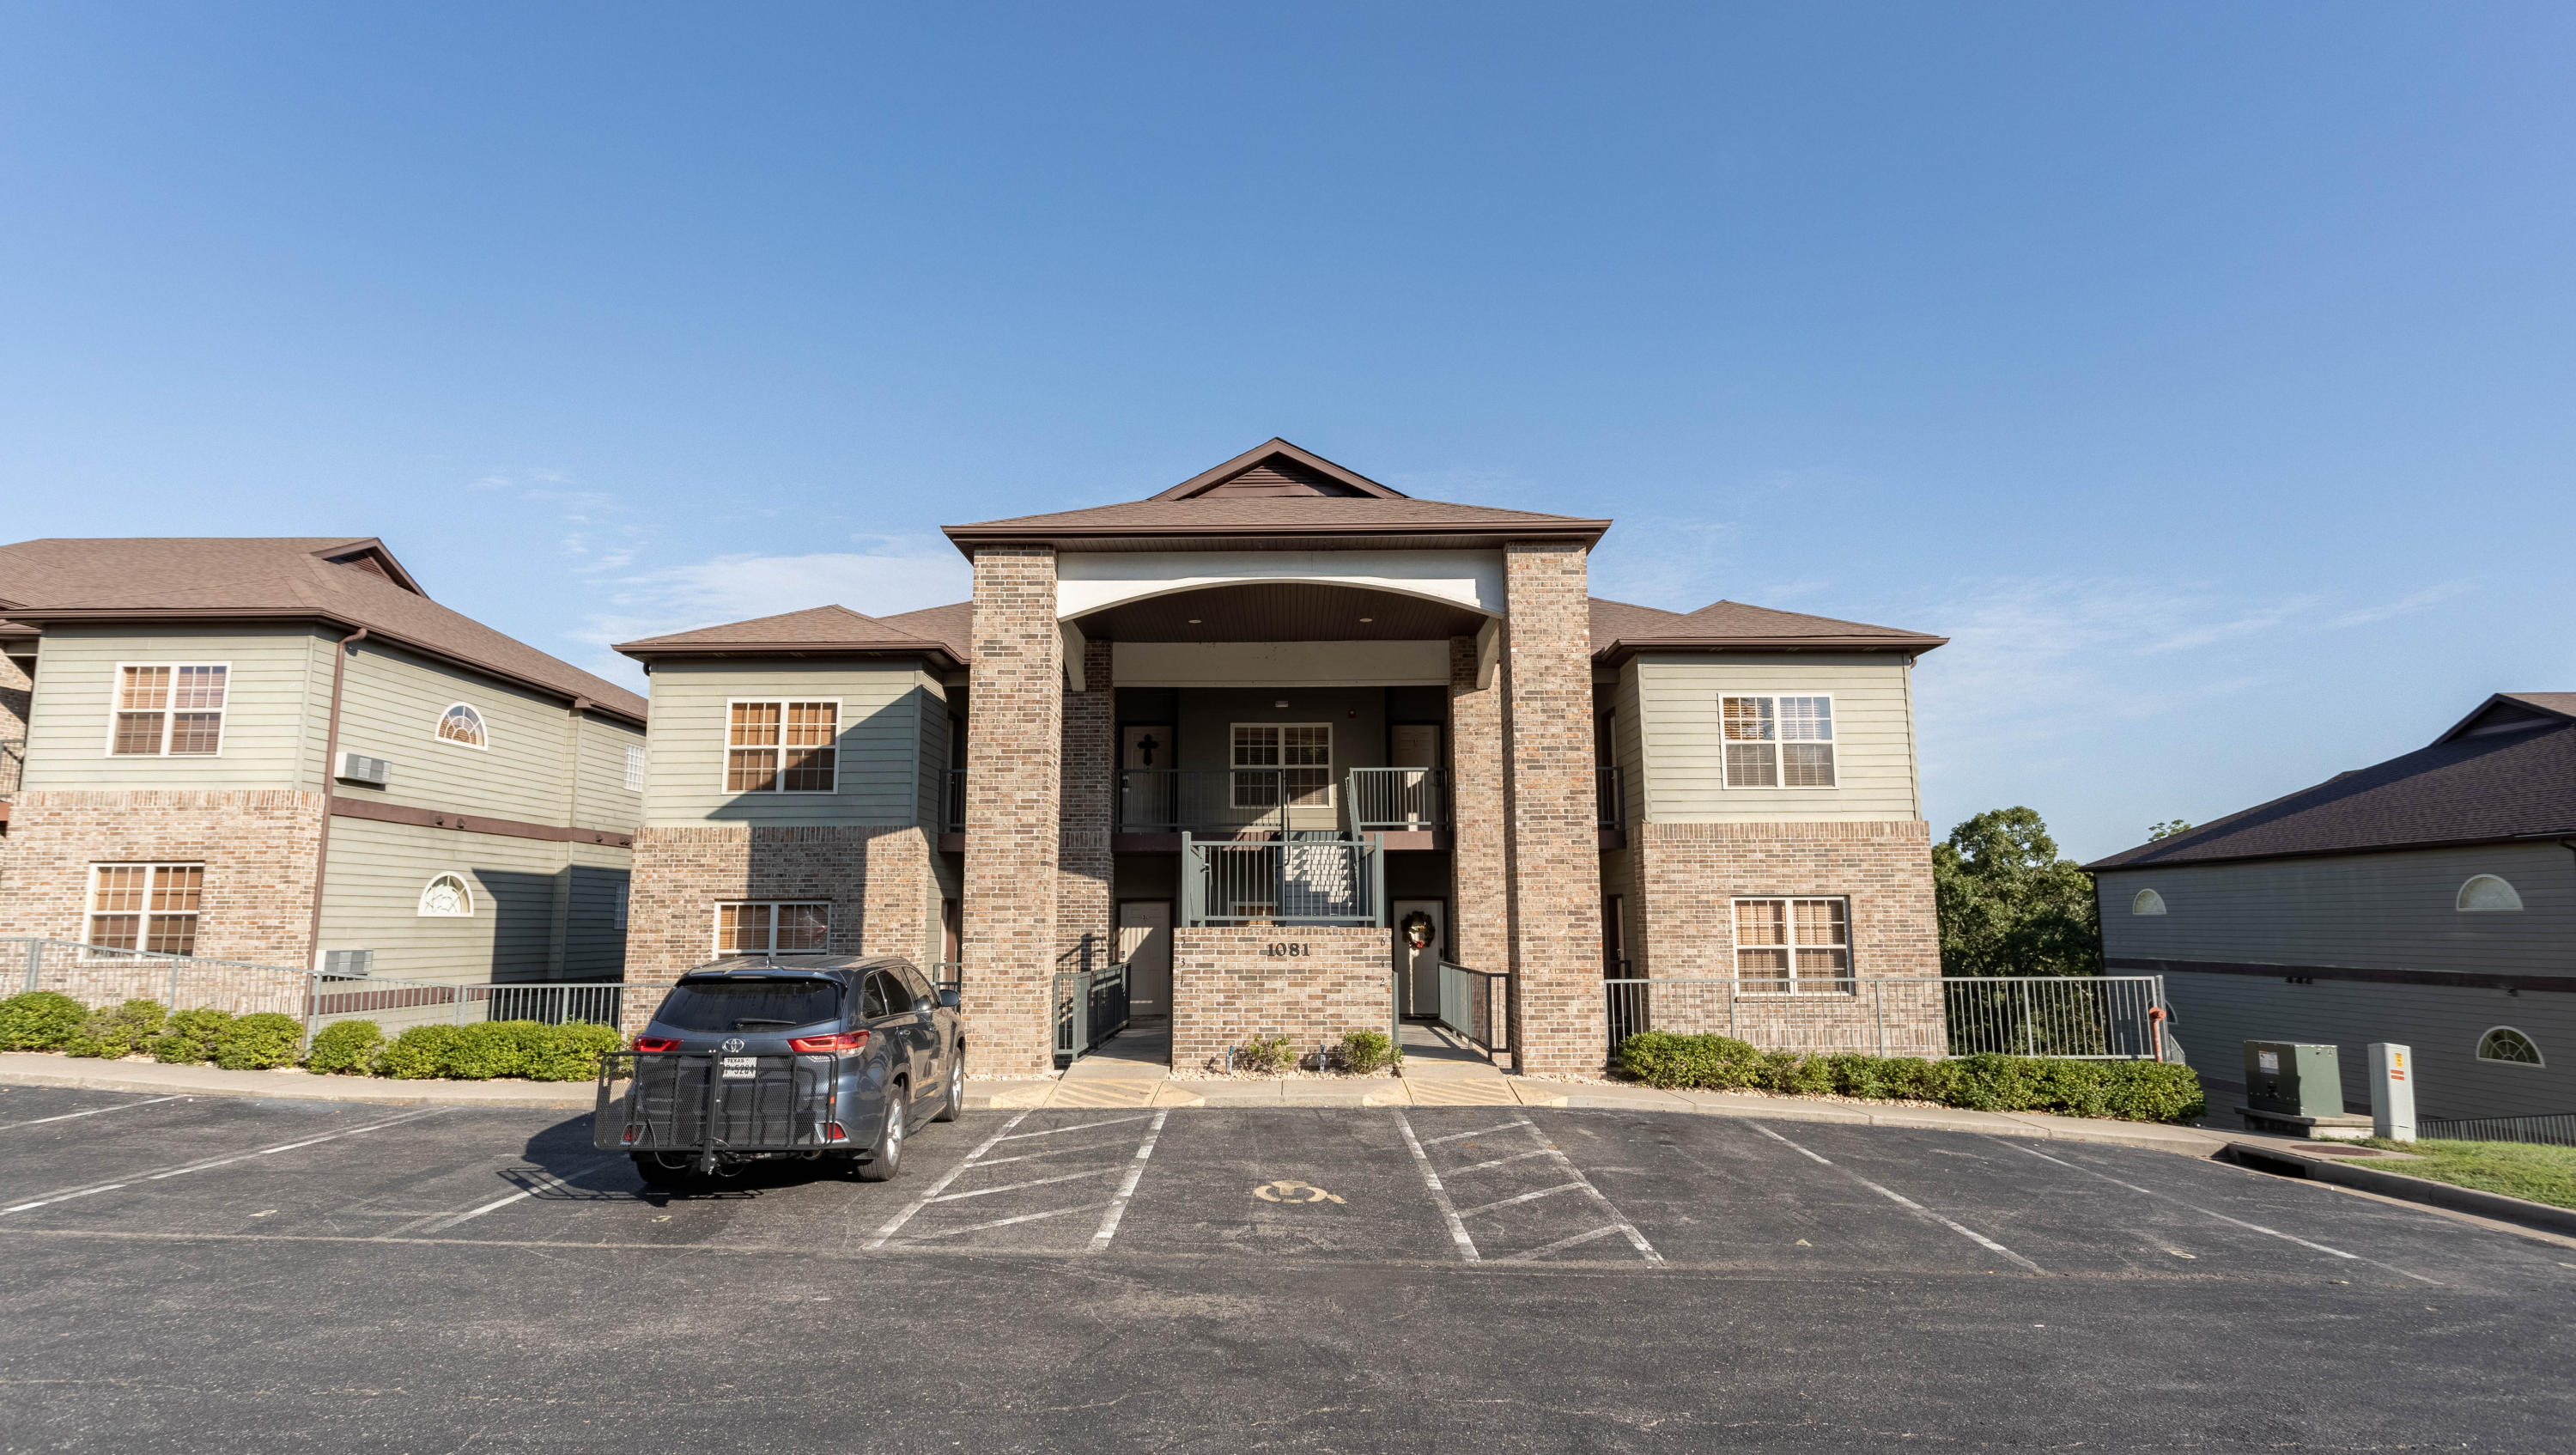 1081 Golf Drive #1 Branson West, MO 65737